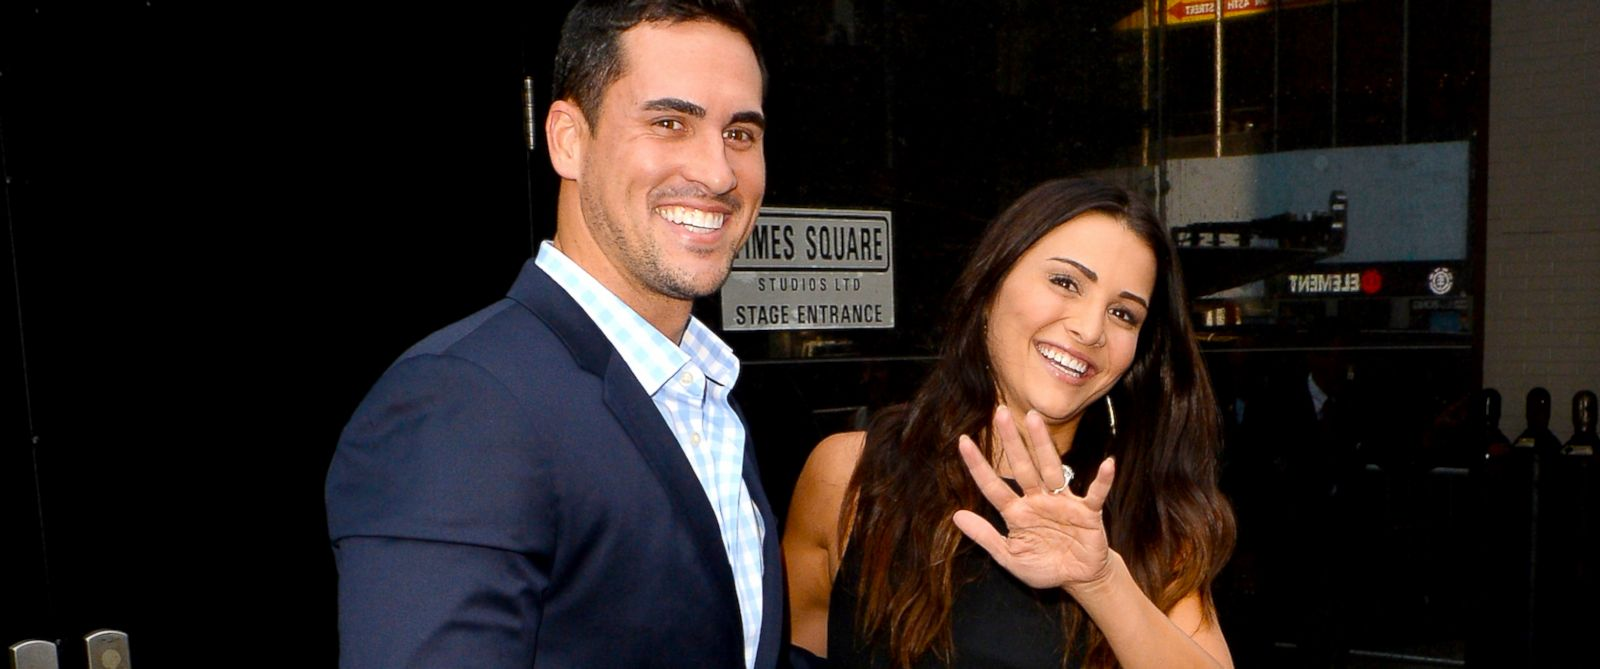 "PHOTO: Andi Dorfman and Josh Murray from The Bachelorette are seen leaving ""Good Morning America""on July 29, 2014 in New York City."